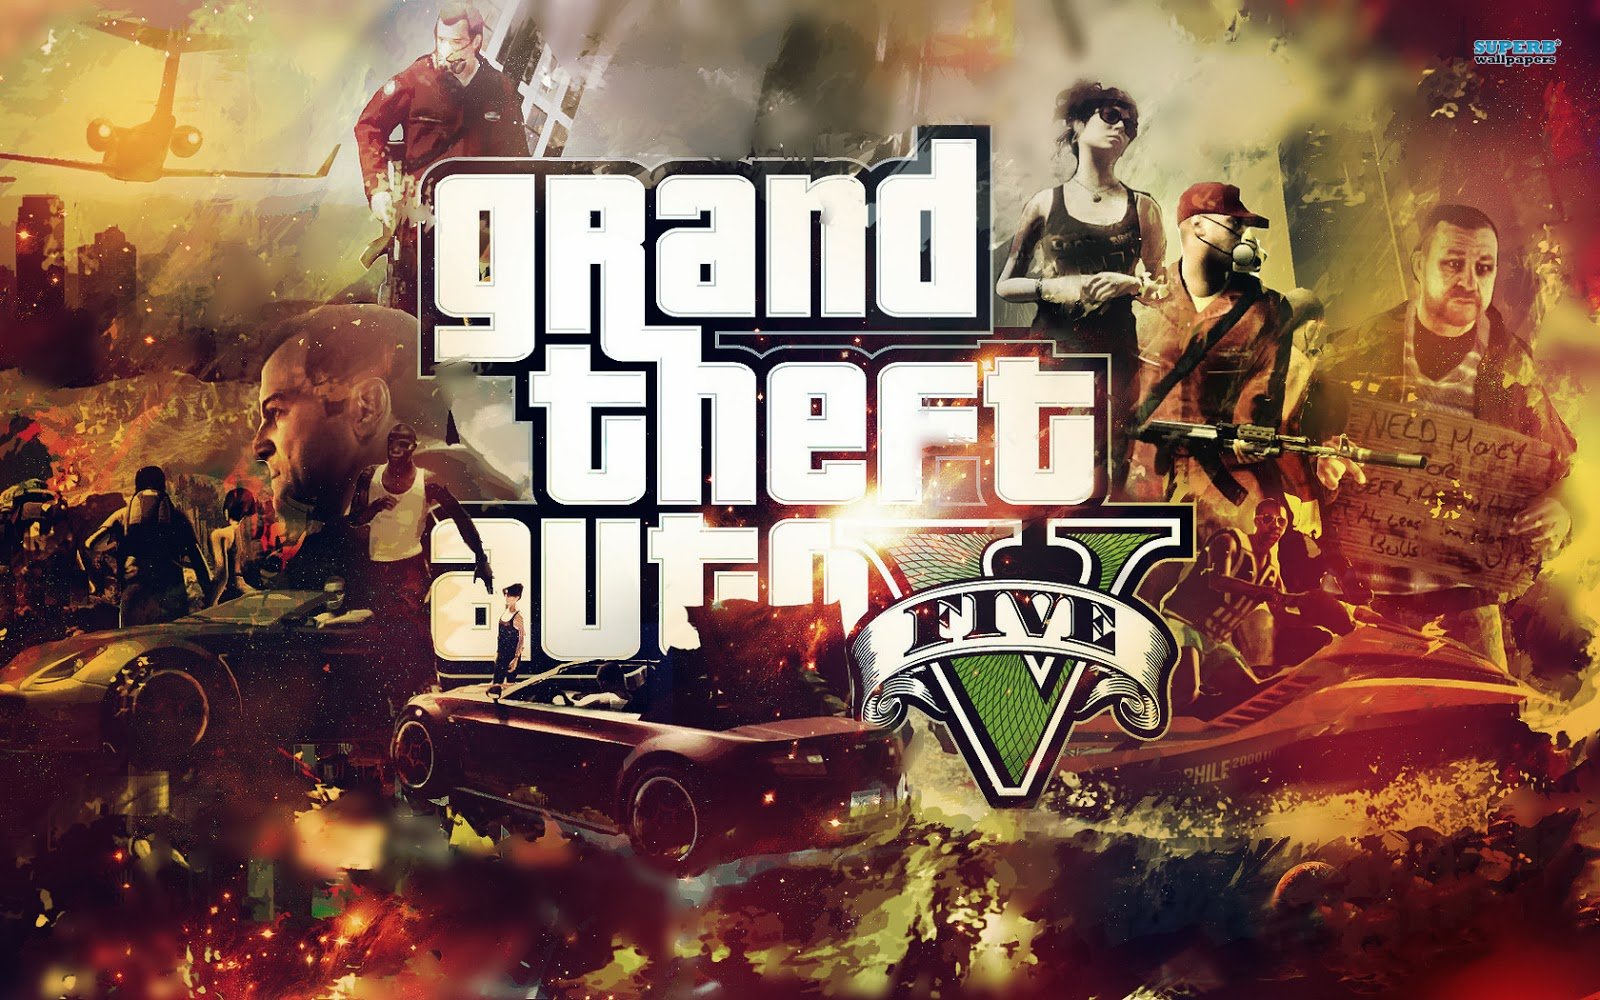 This Gta V Wallpaper Are Not Like The Other Its Featuring All Characters In Game Its Also Have A Burning Red Background You Can Download This Gta V